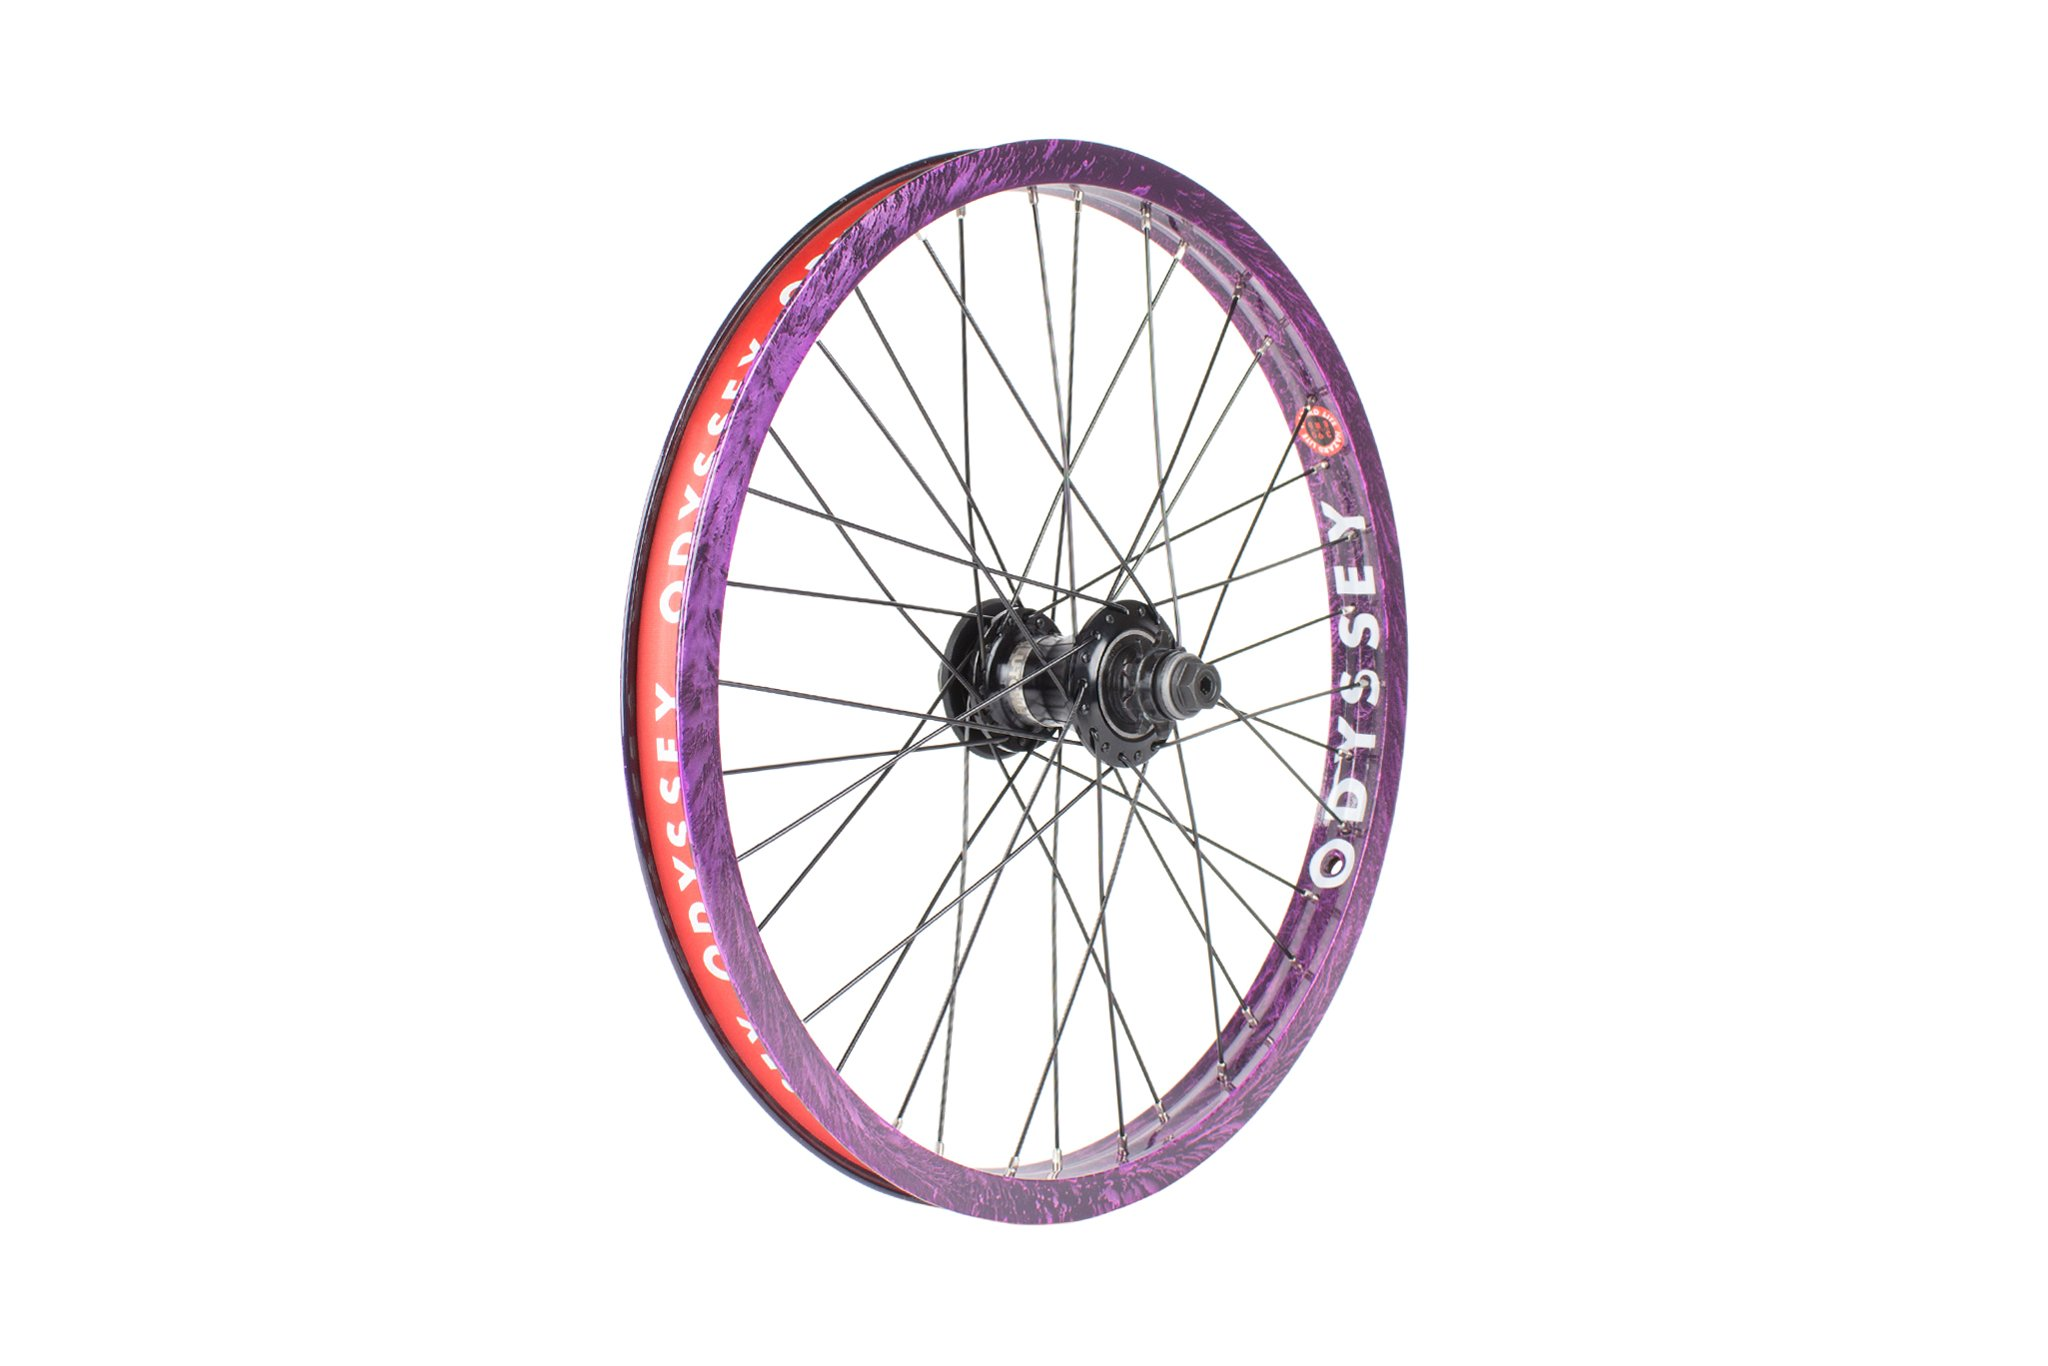 Odyssey BMX Hazard Lite Freecoaster Wheel im Limited Edition Purple Rain Colorway mit Clutch V2 Freecoaster Hub und Hazard Lite Rim